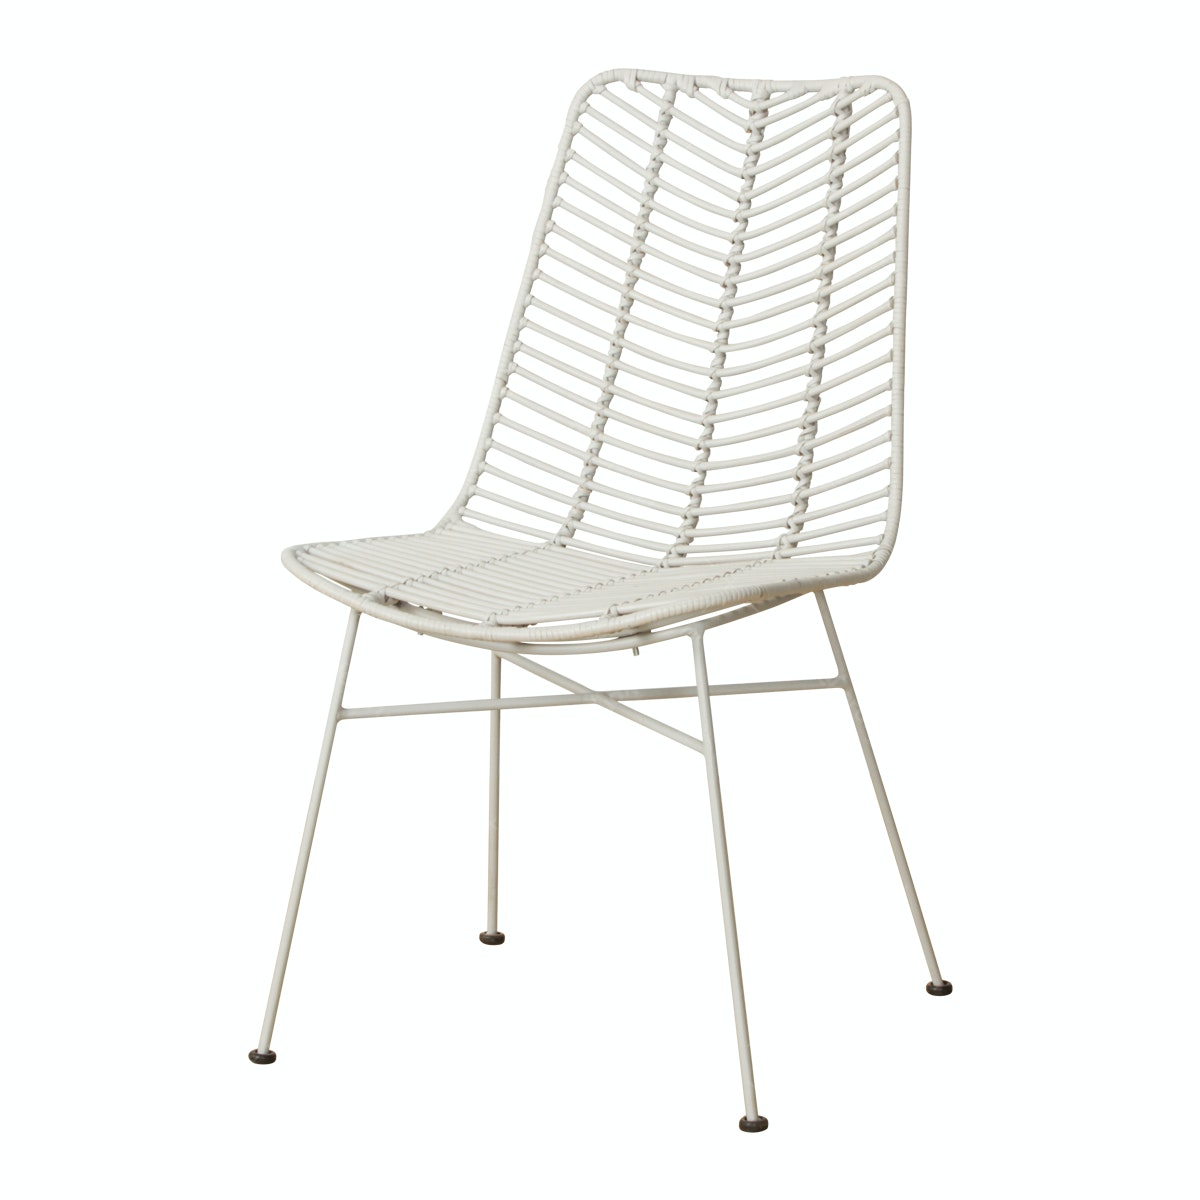 Cass Living MORY CHAIR Light Grey